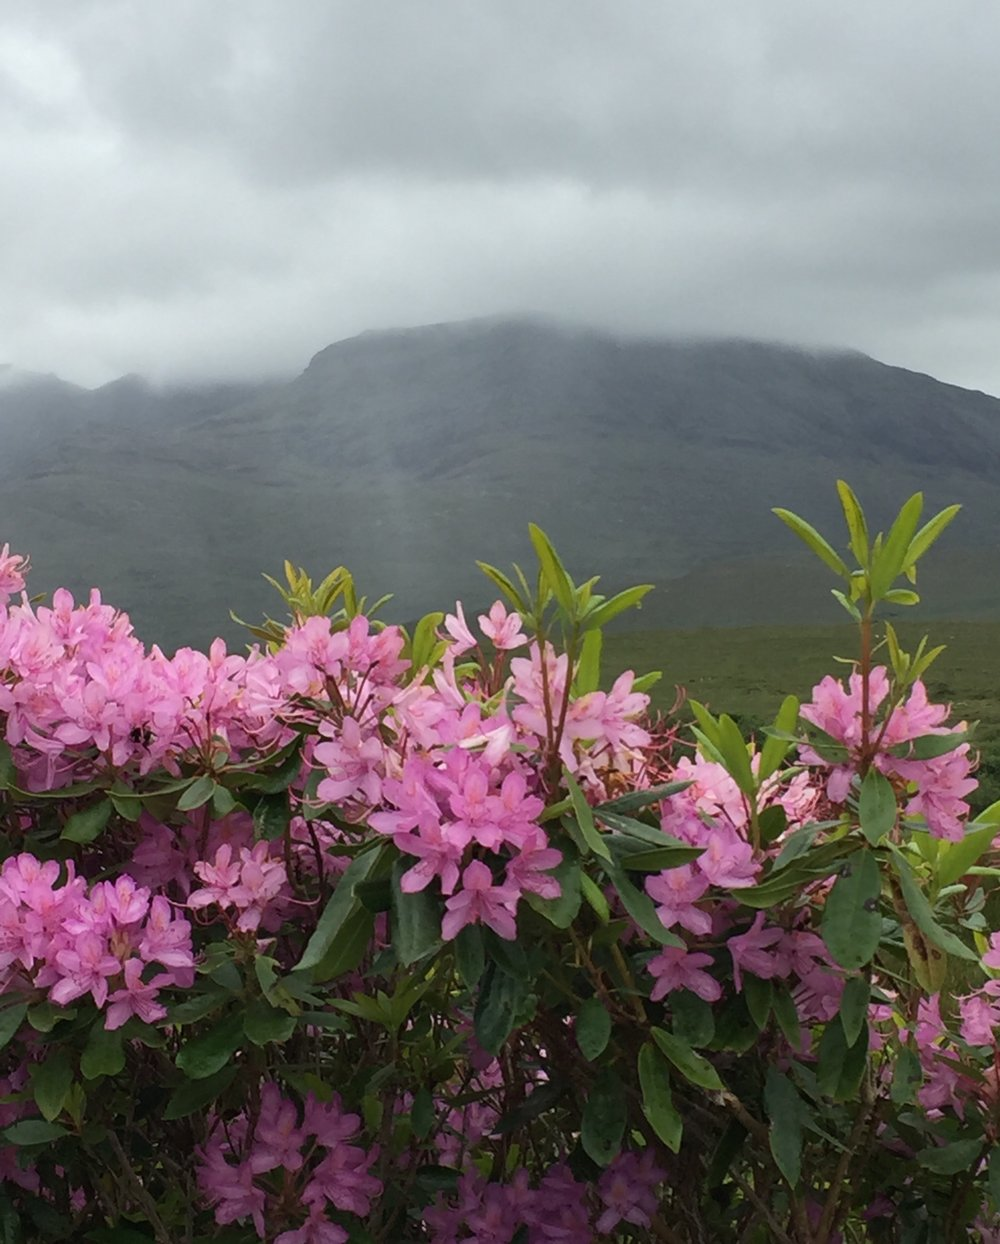 Rhododendrons in bloom in Connemara